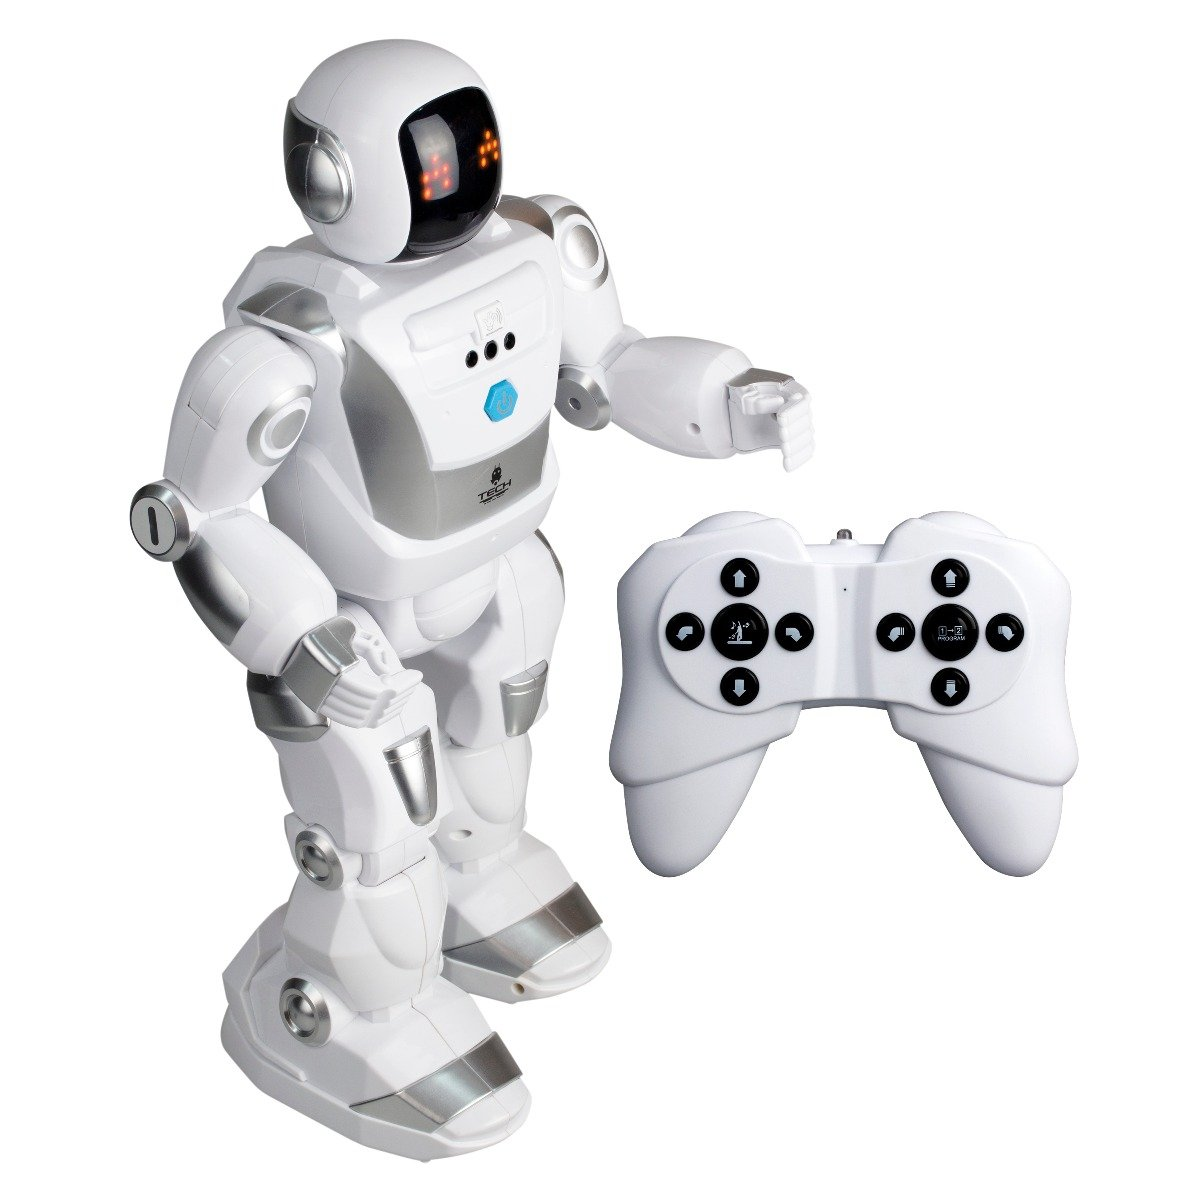 Robot interactiv Silverlit, Program A Bot X